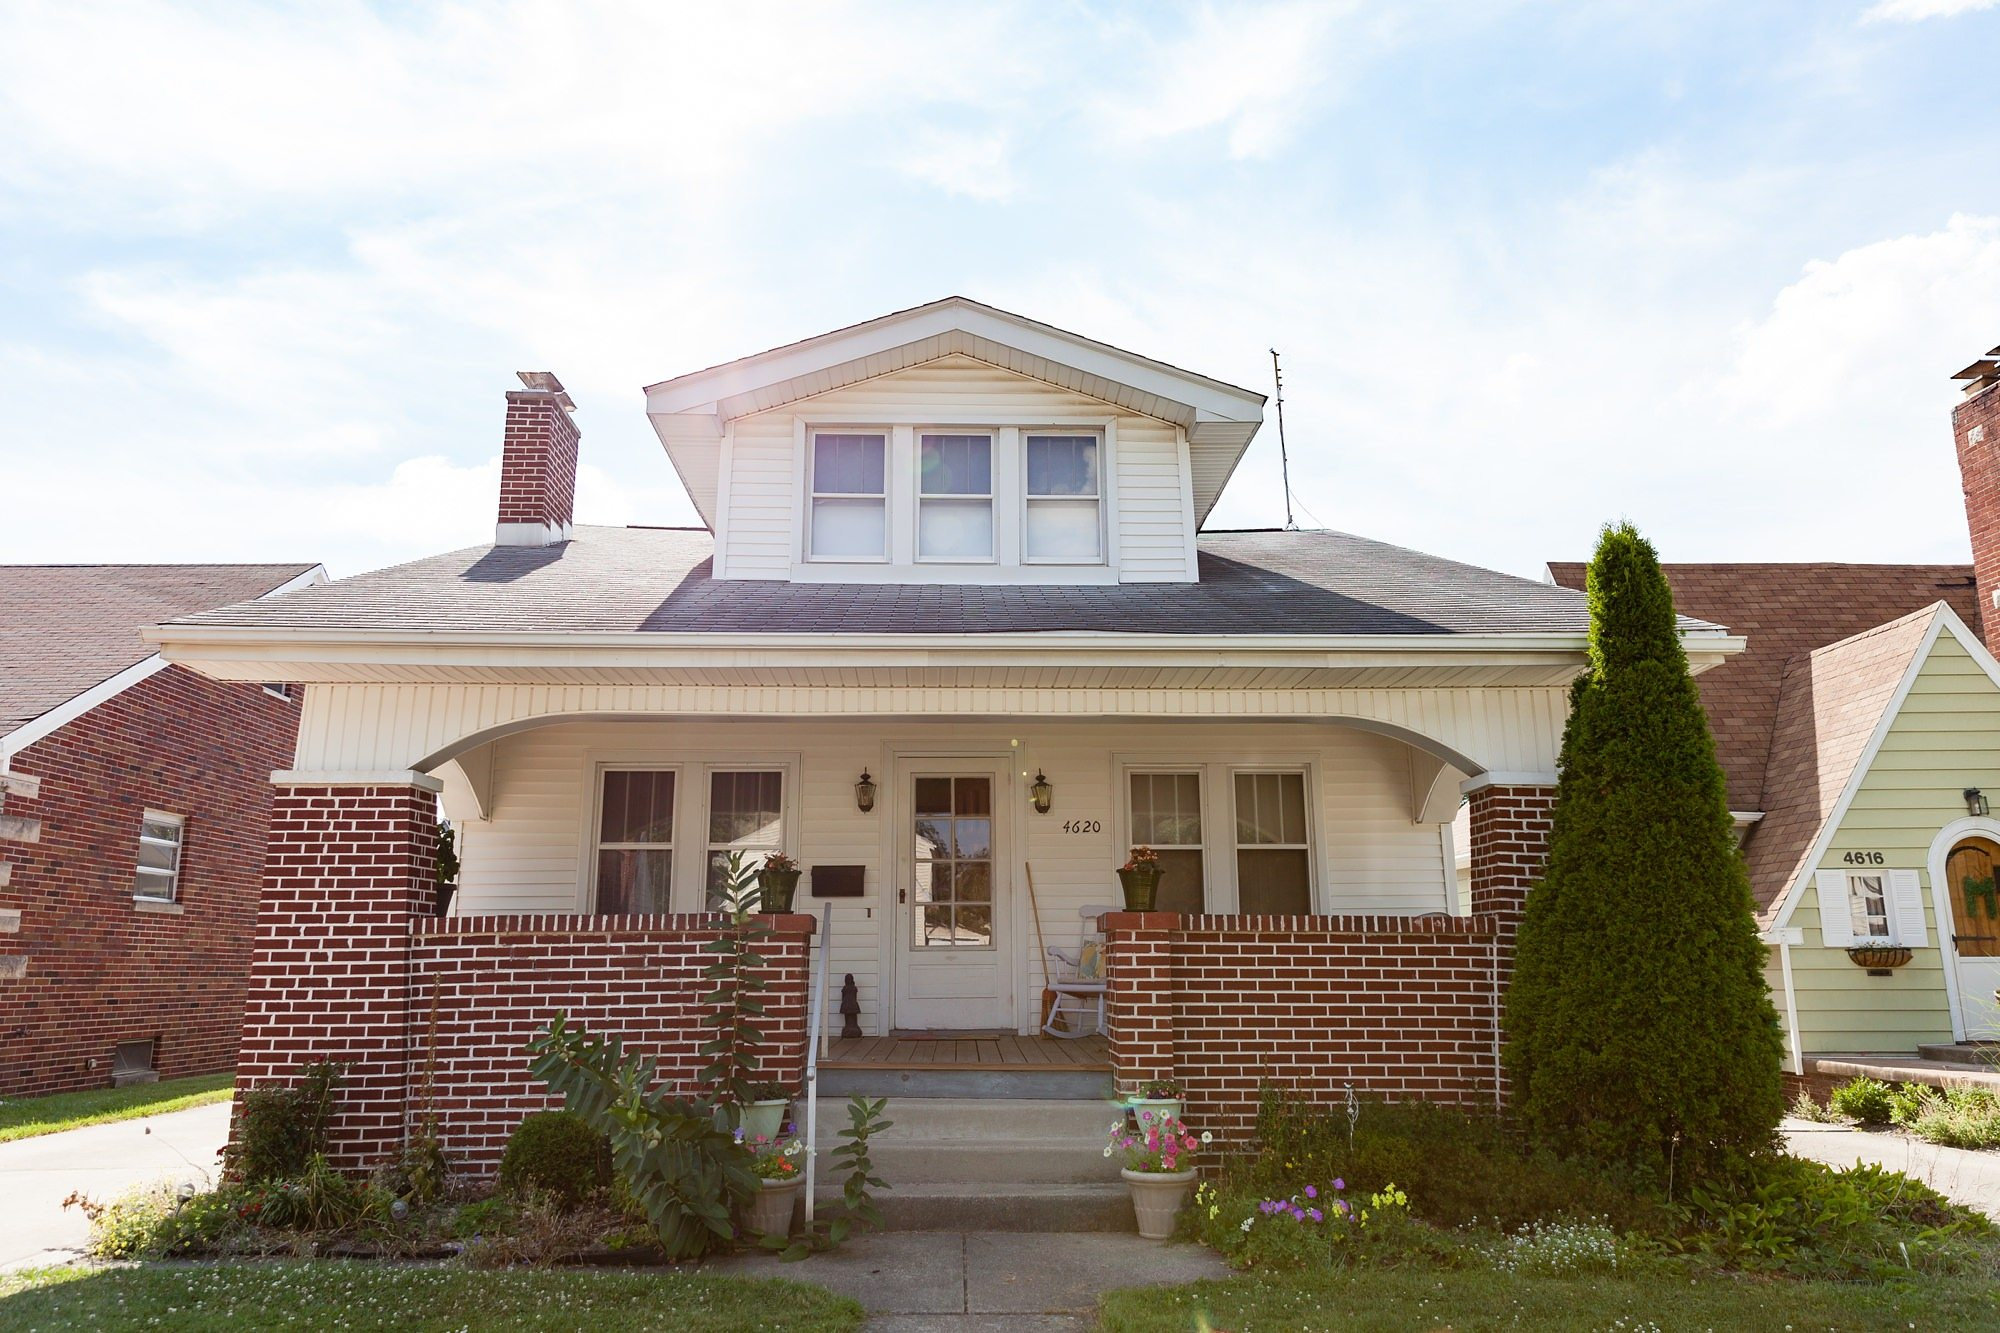 Craftsman style house in Ft. Wayne Indiana